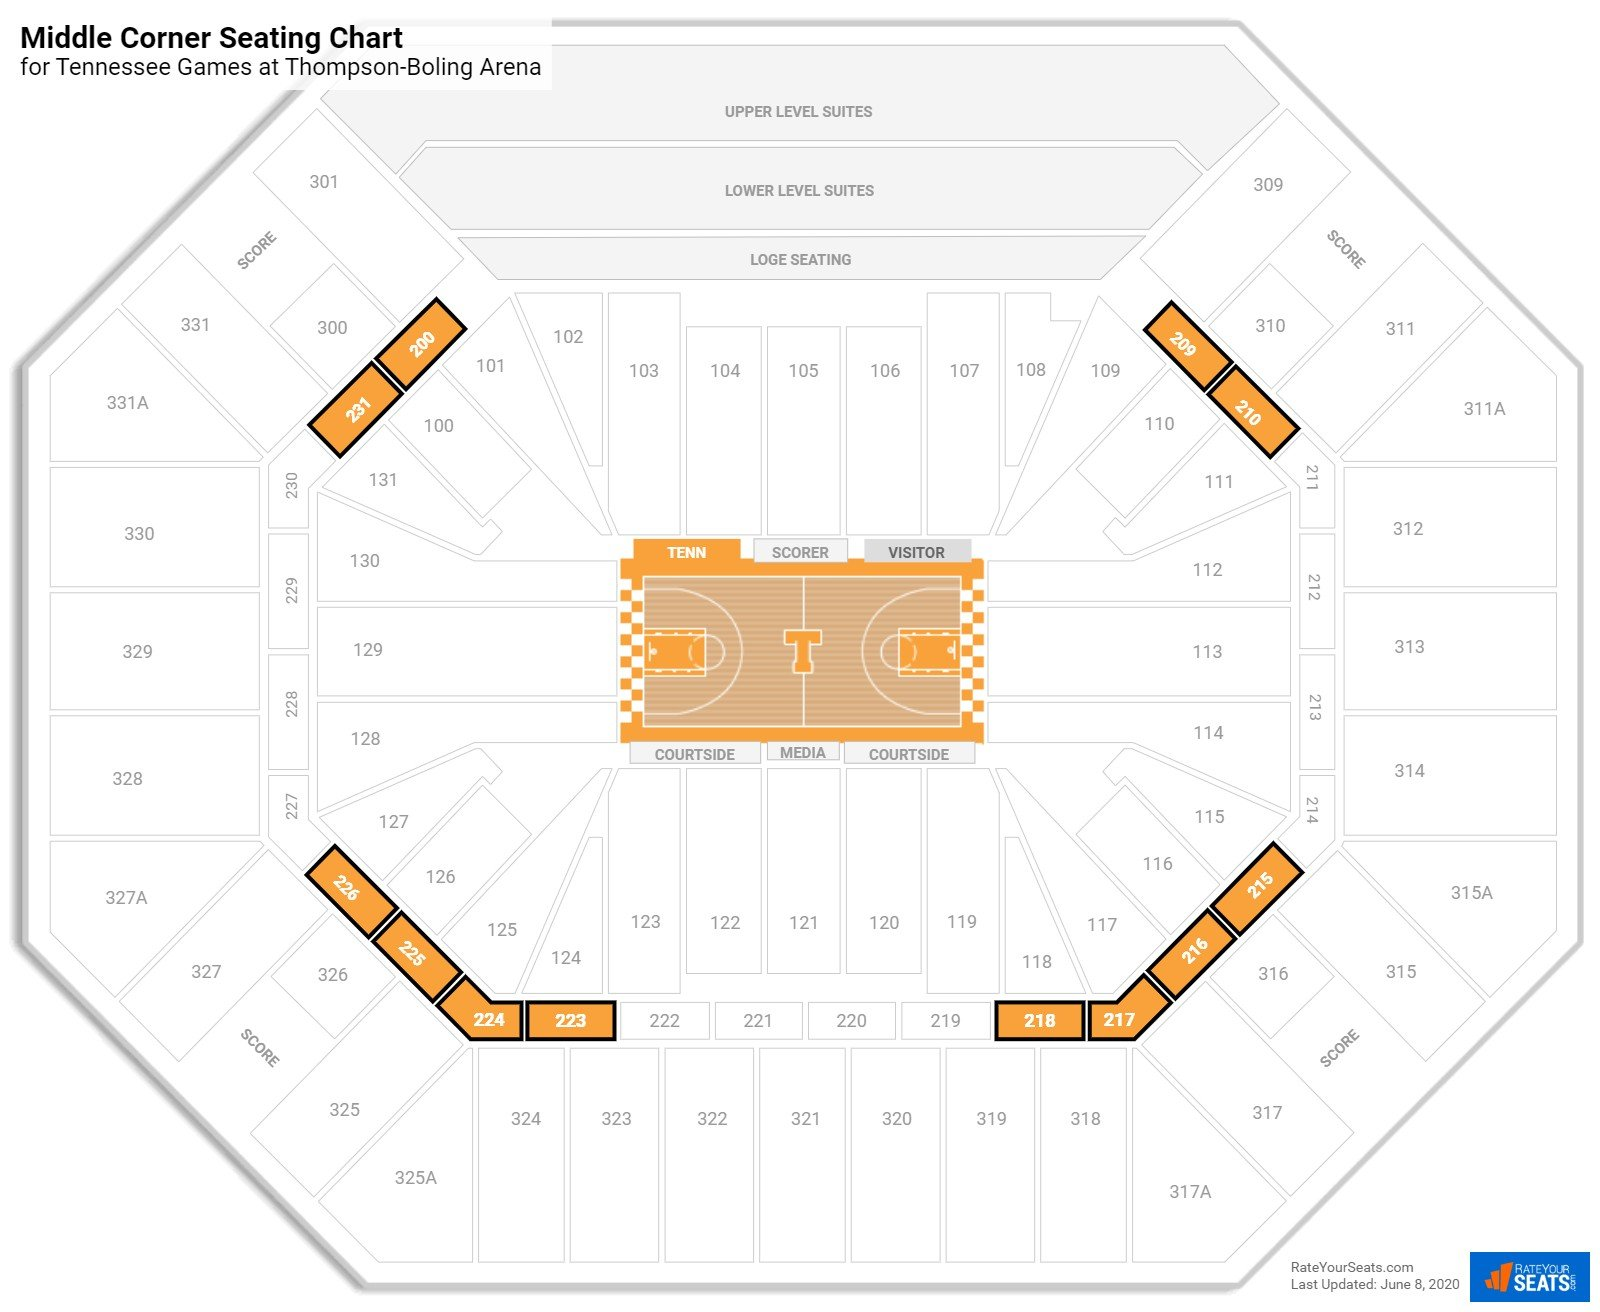 Thompson Boling Arena Middle Corner Seating Chart